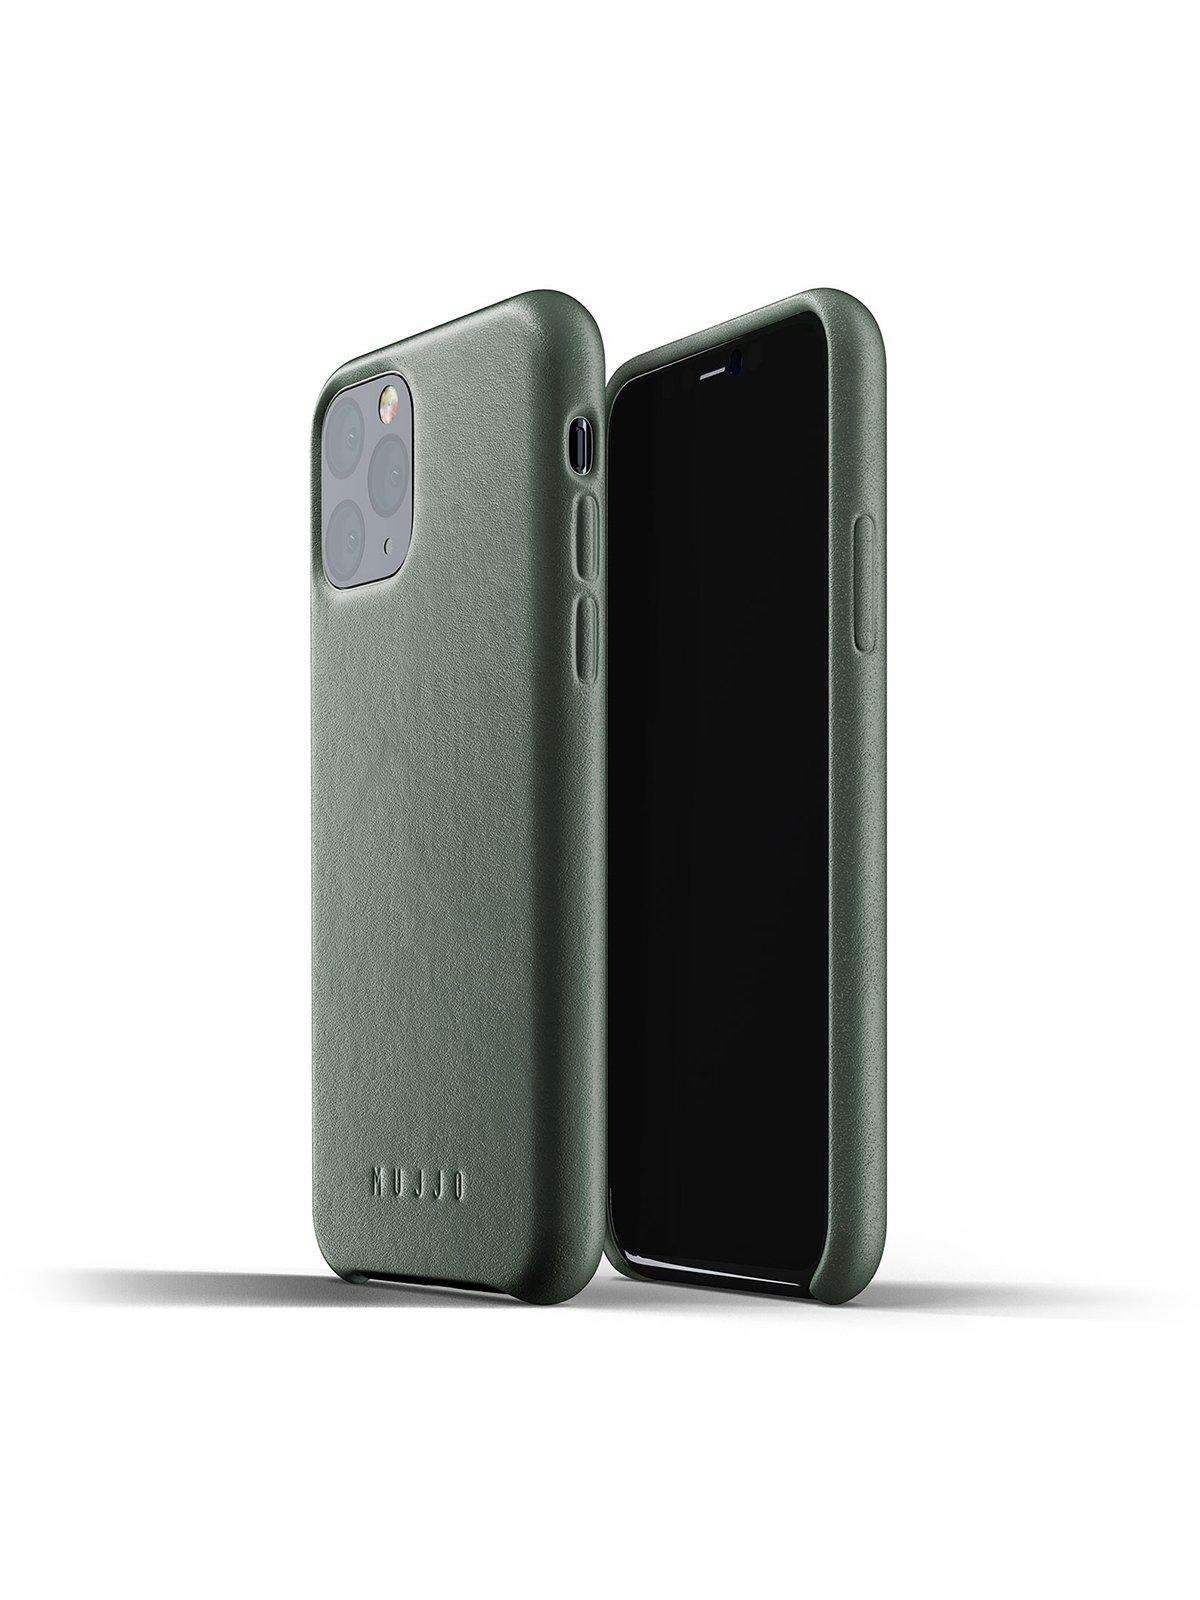 Mujjo Full Leather Case for iPhone 11 Pro Slate Green - MORE by Morello Indonesia